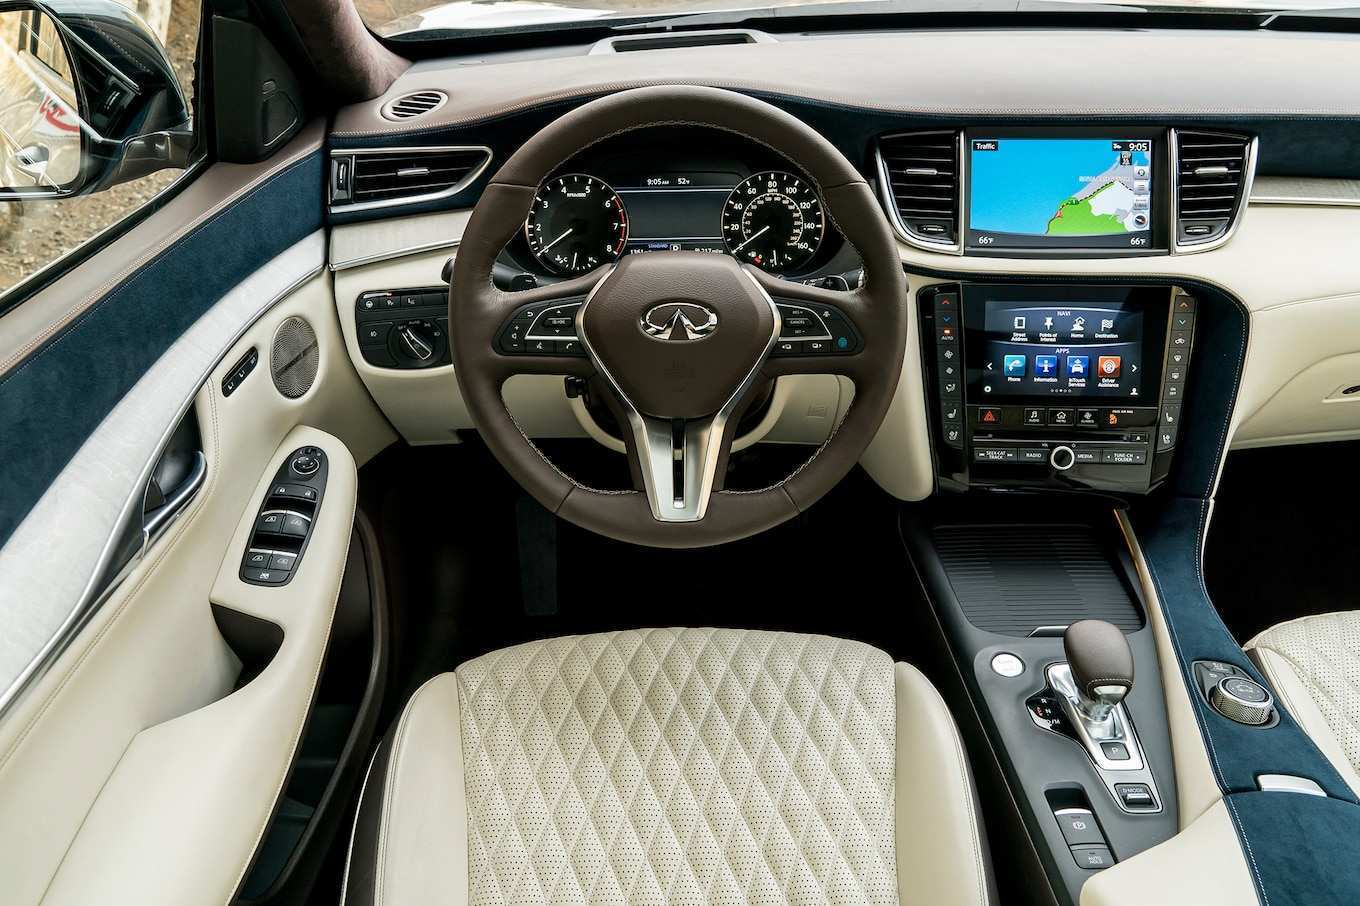 17 New 2019 Infiniti Qx50 Engine Specs Spesification